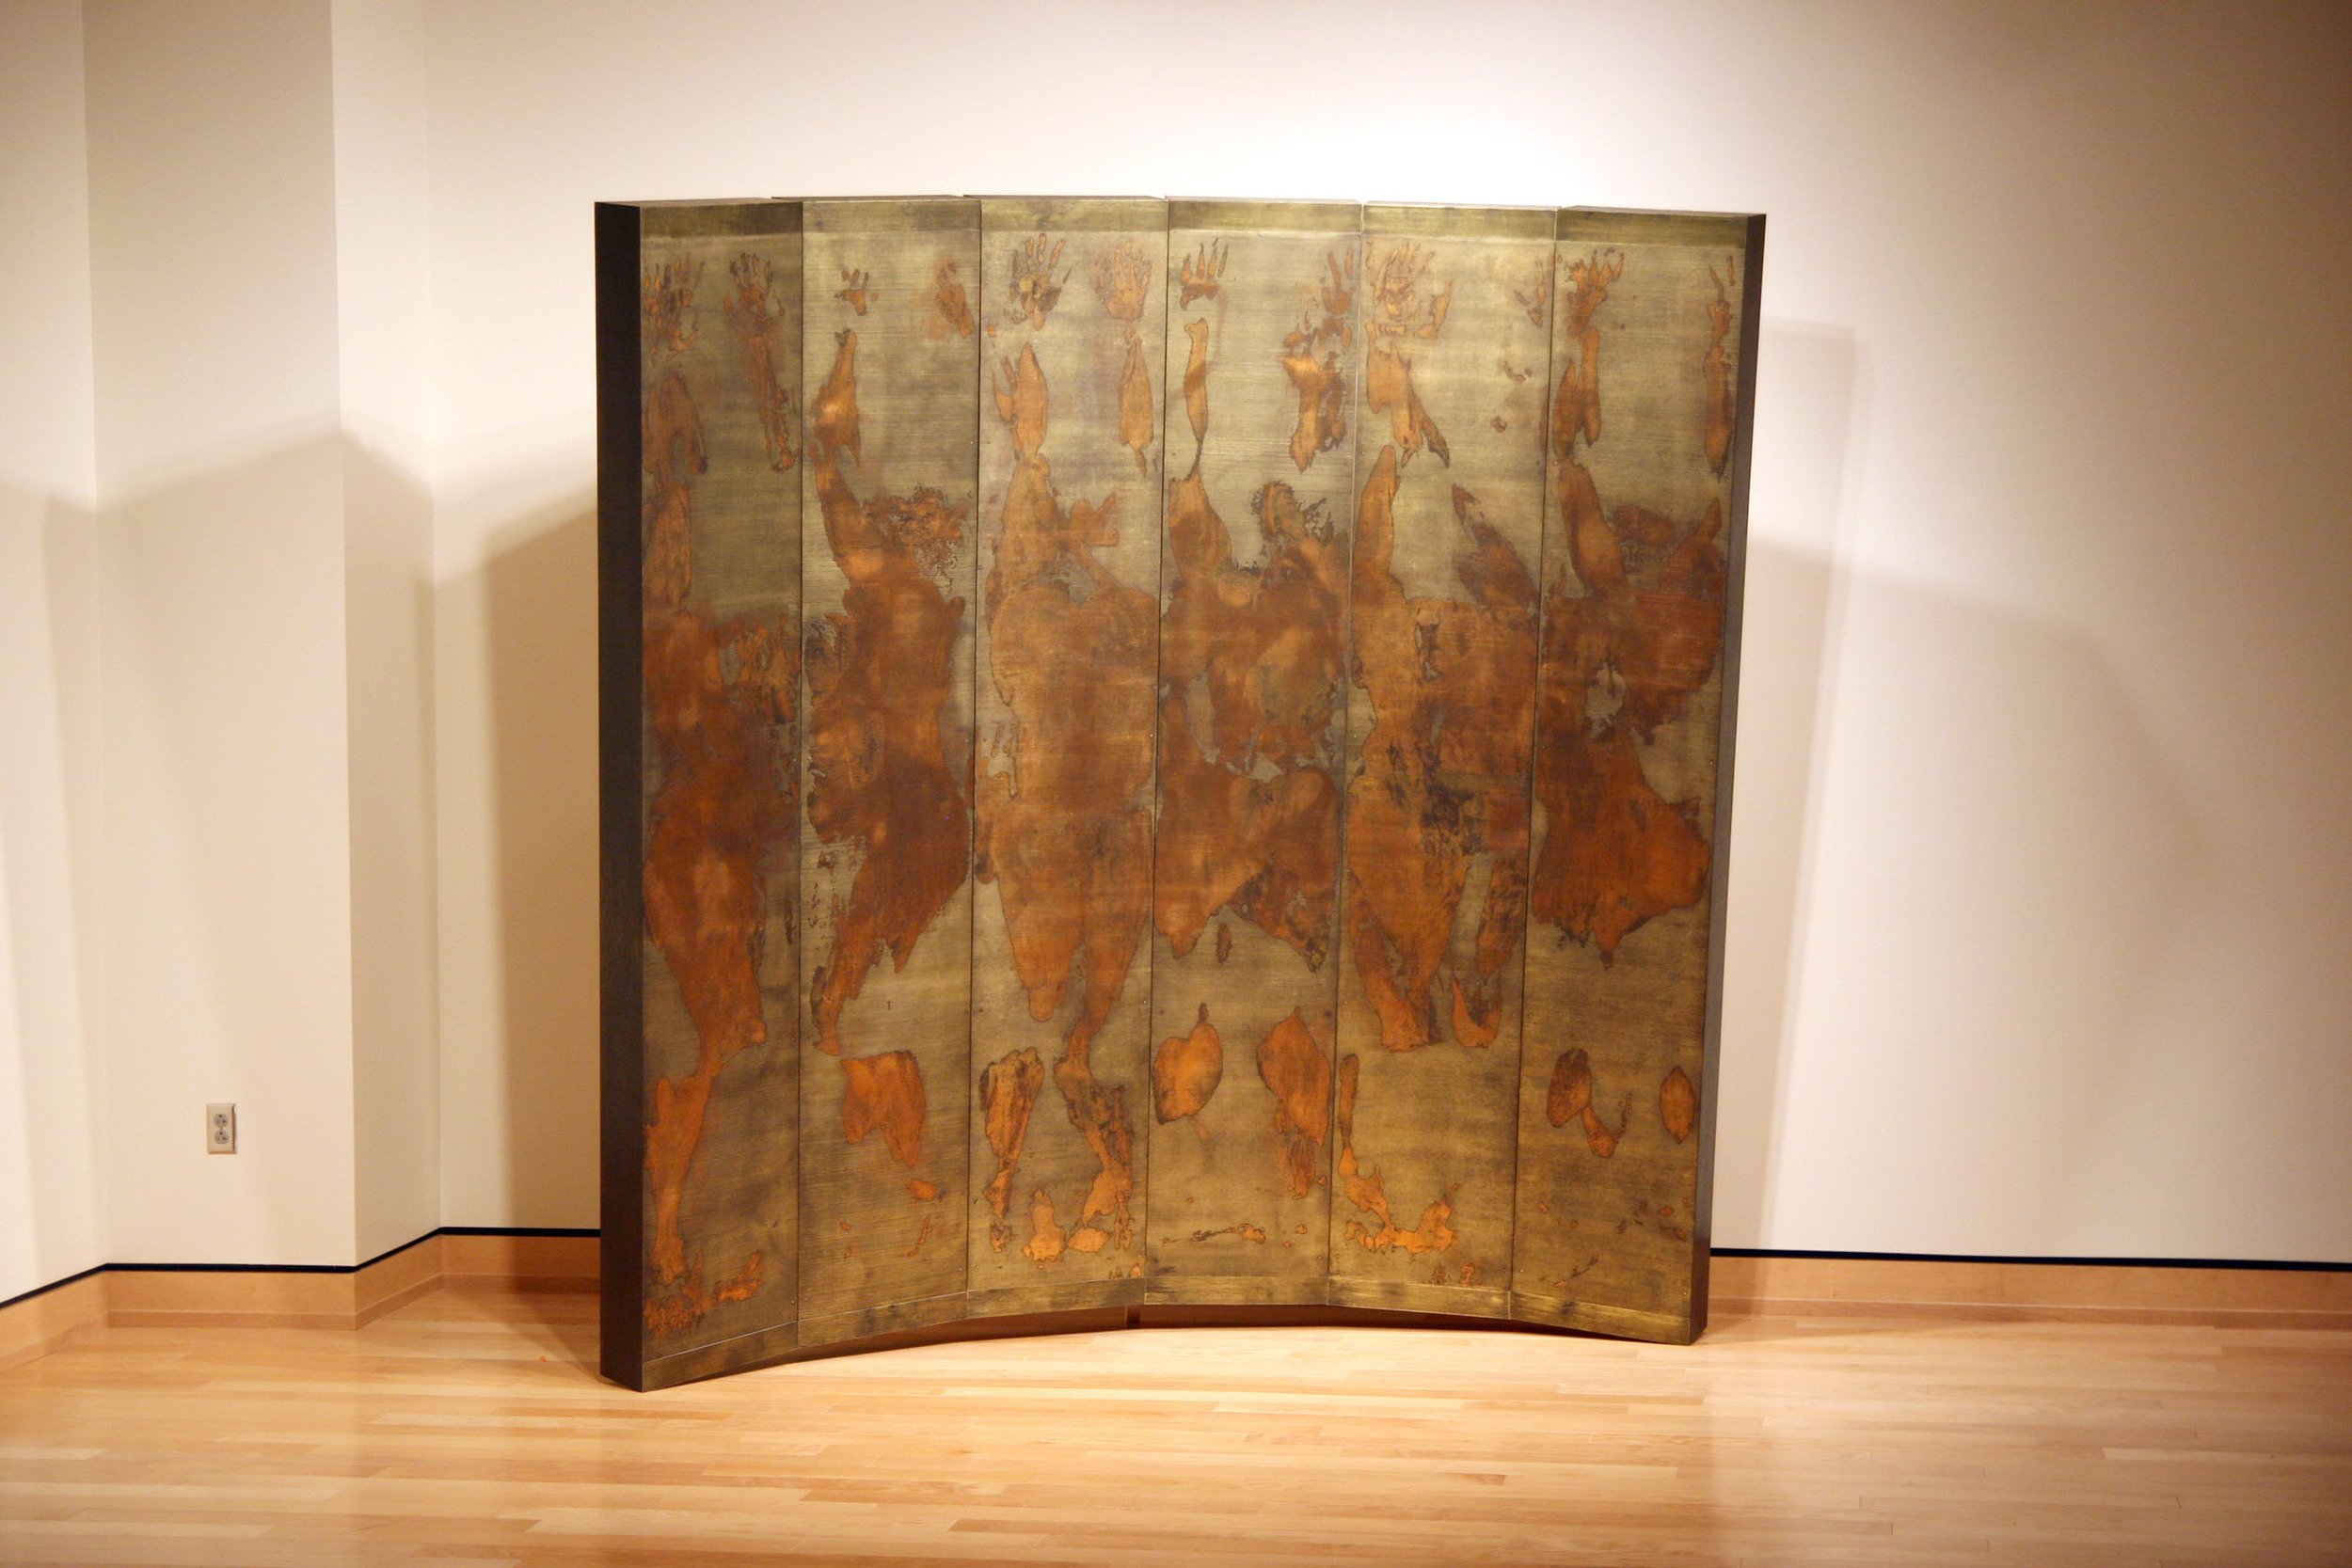 """Pusher     woodcut monoprints, mounted on prepared boxes, assembled in a tilted horizontal arc form paper, ink, metallic foil, wood, oil paints, hardware 96"""" x 96"""" x 24"""" 2010"""